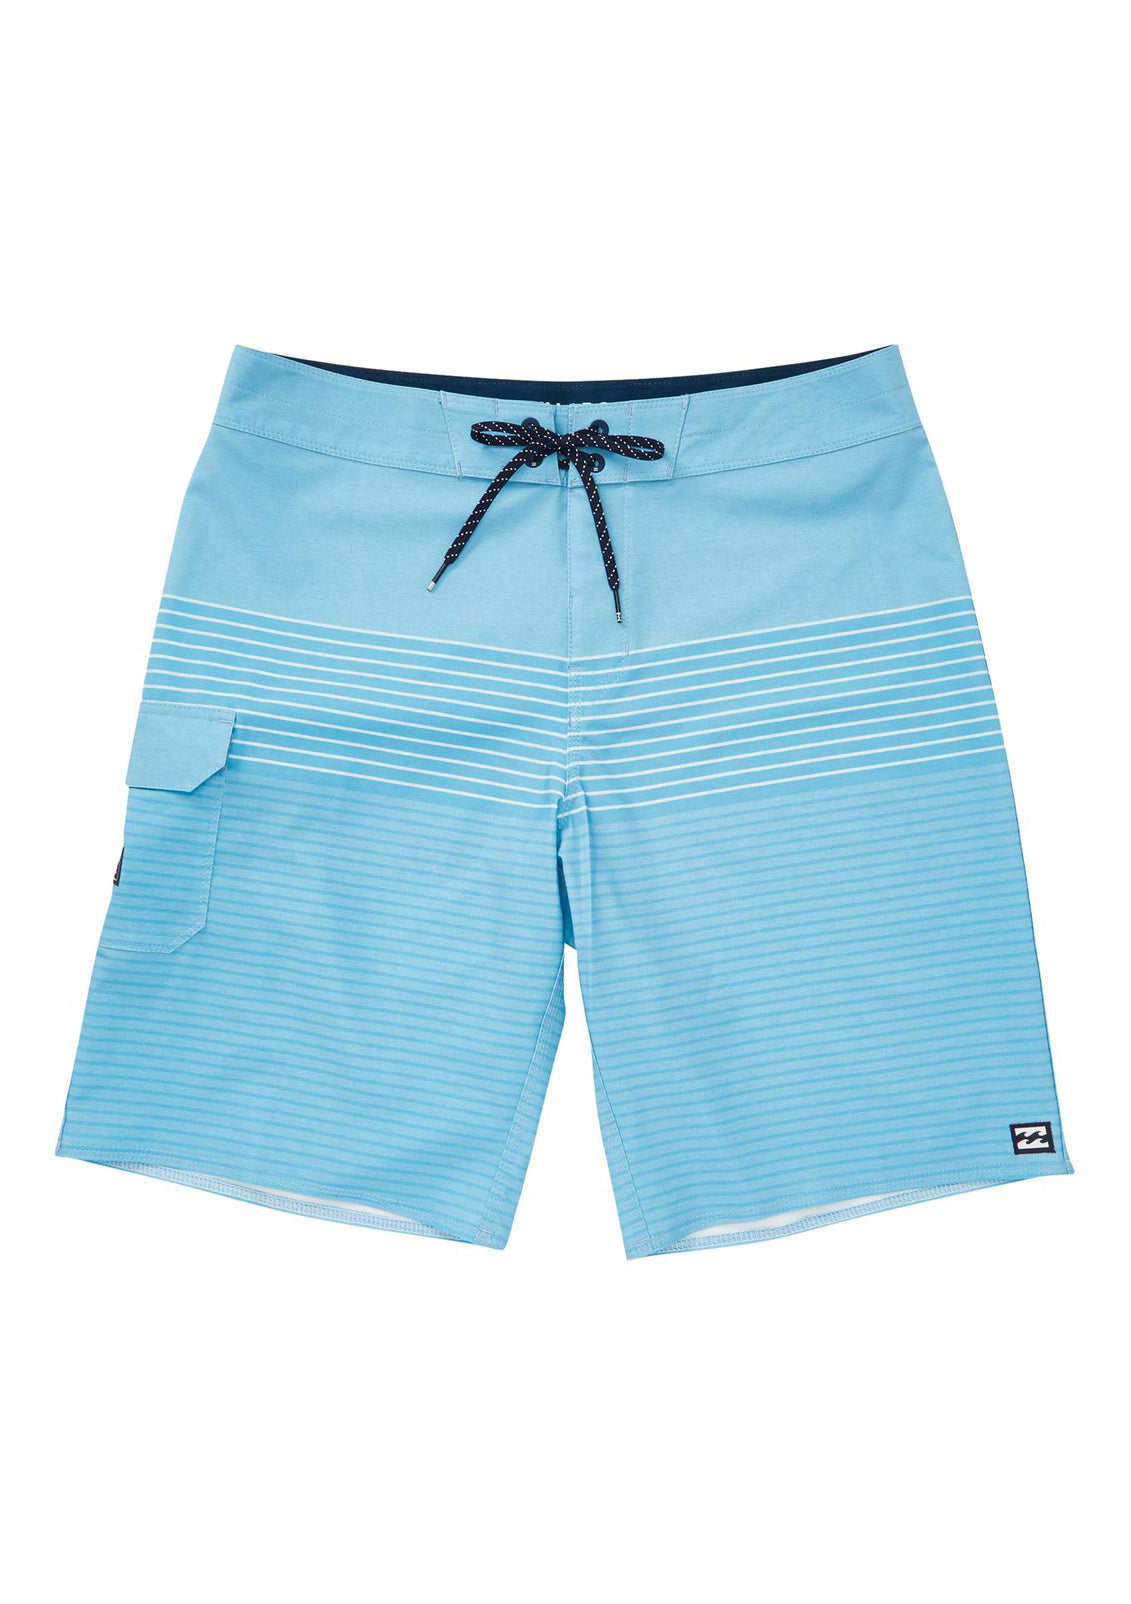 All Day Heather Stripe Boardshorts